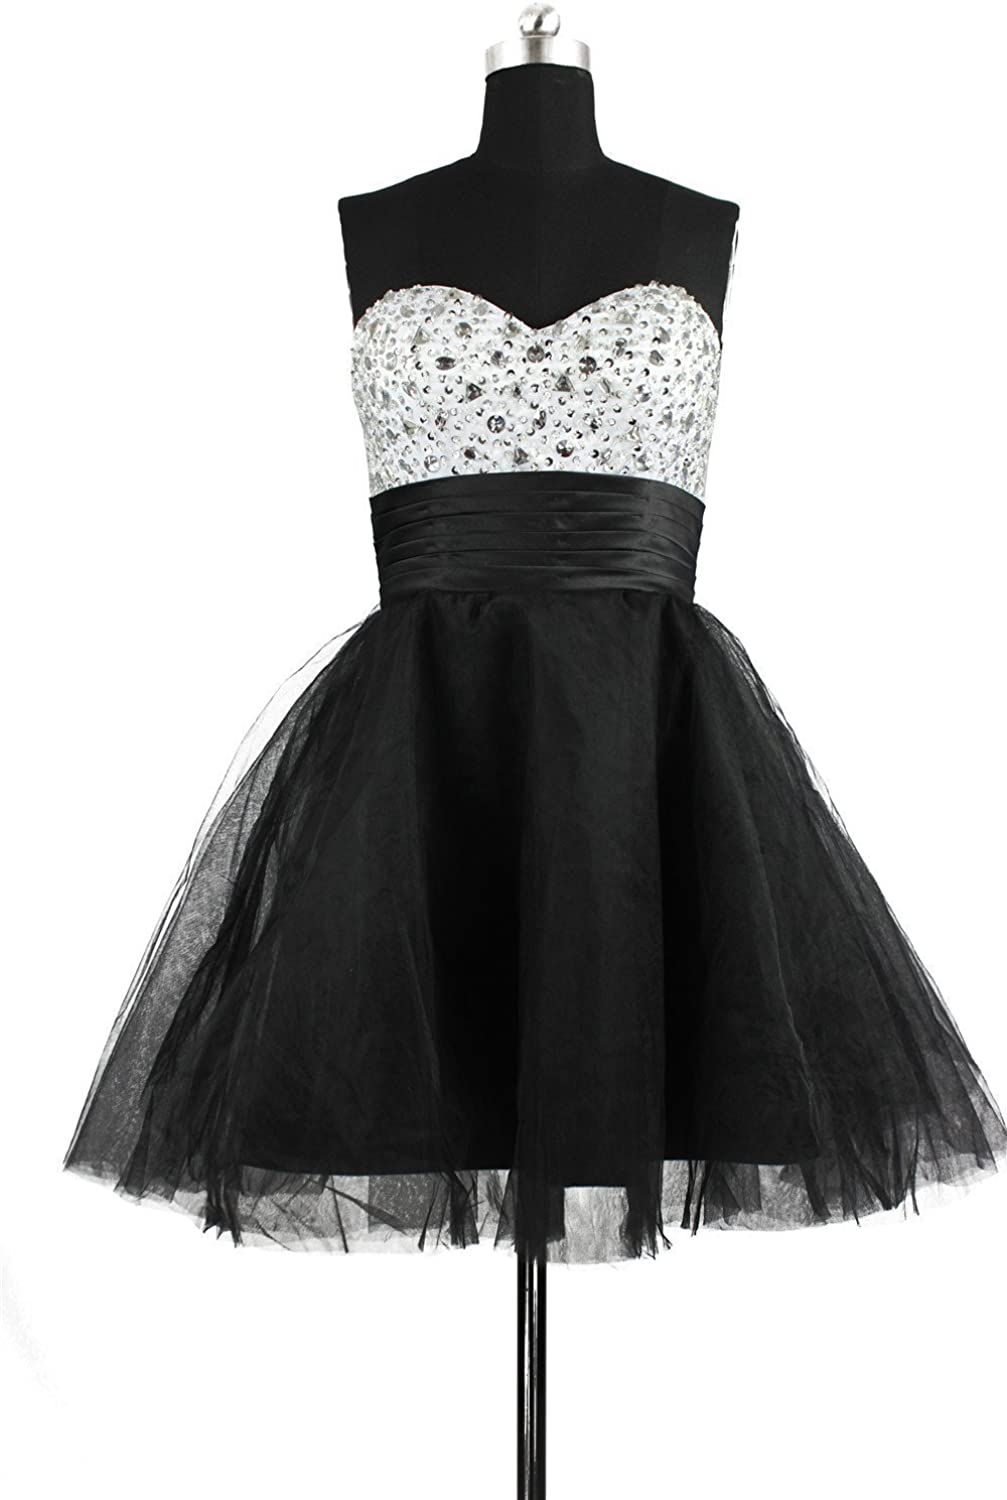 CharmingBridal Beaded A Line Black Prom Dress Short Party Homecoming Dress